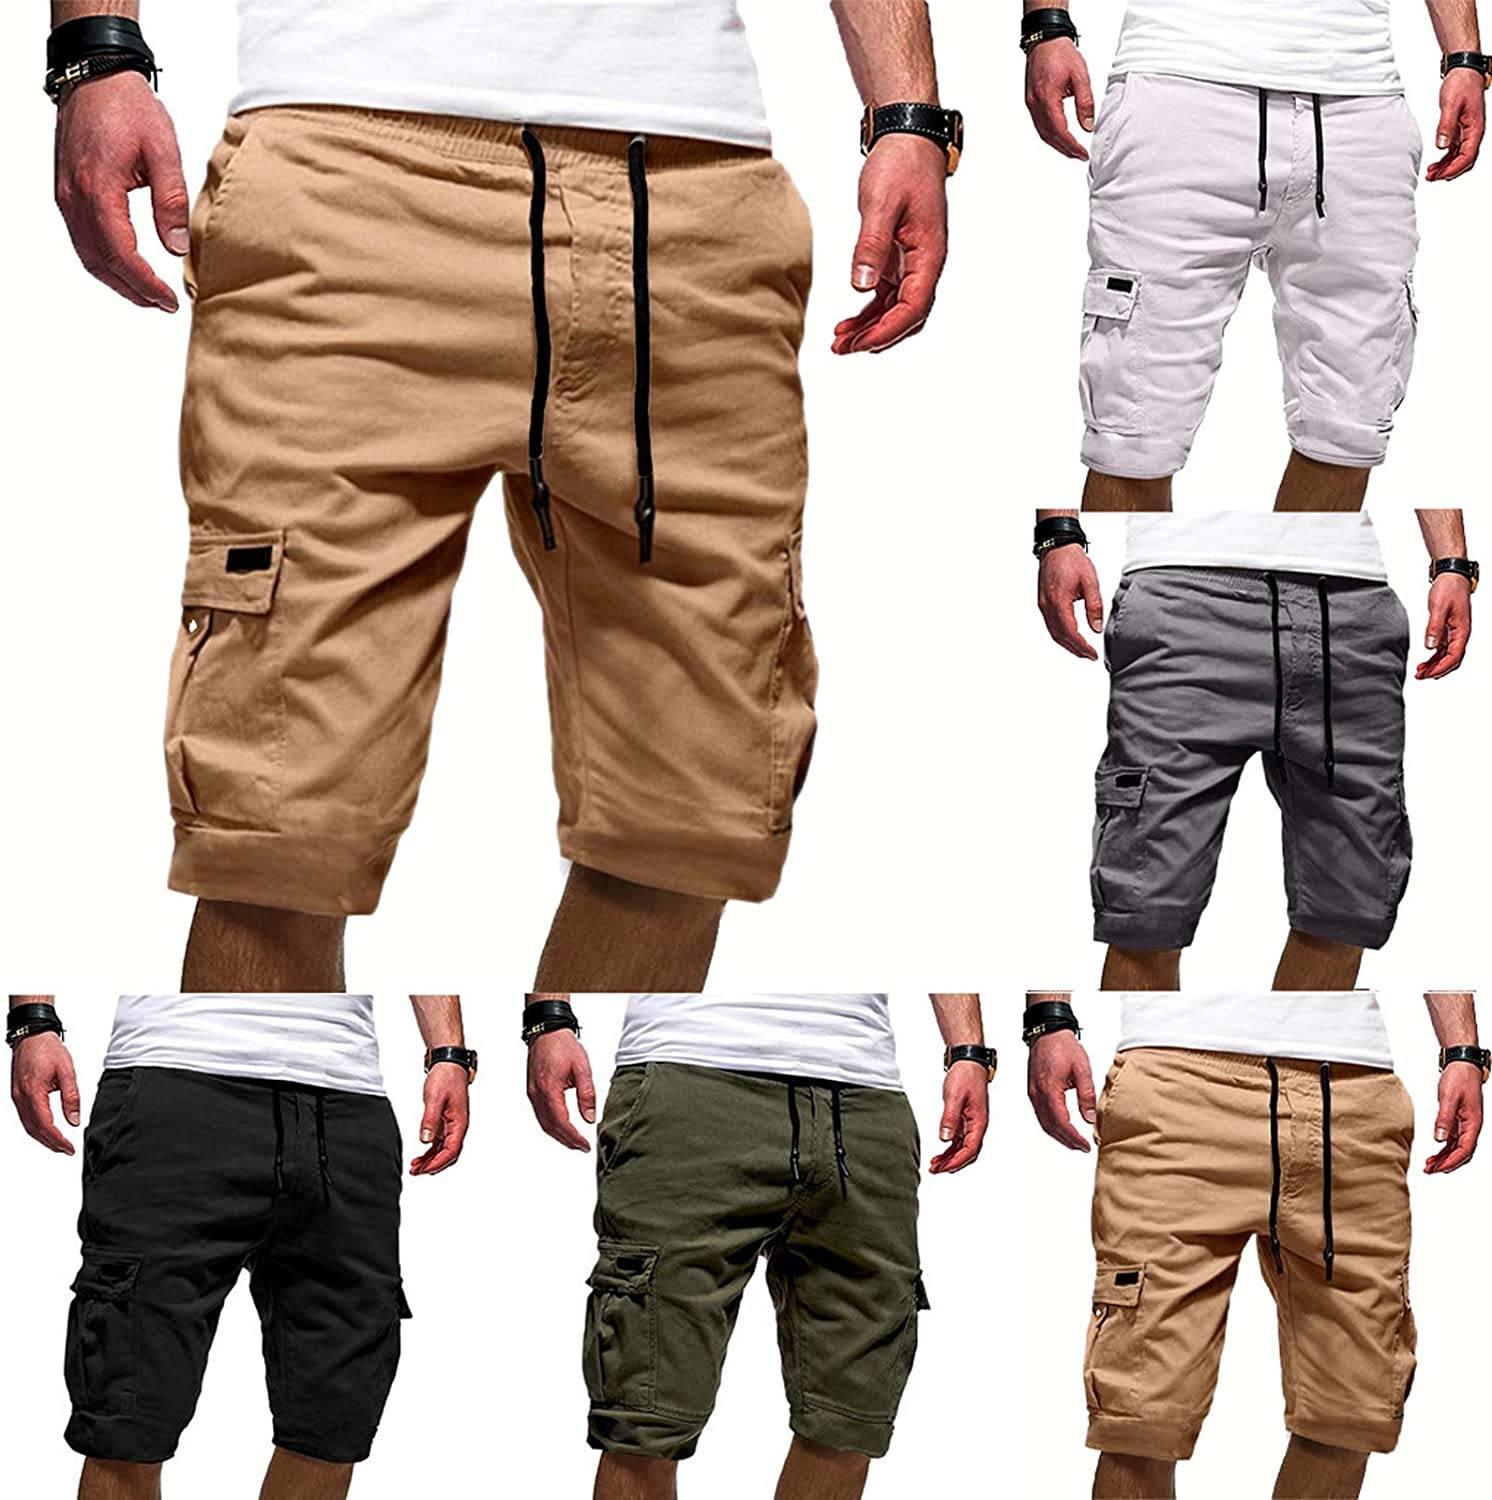 NP Casual Shorts for Man Men's Sport Color Bandage Casual Loose